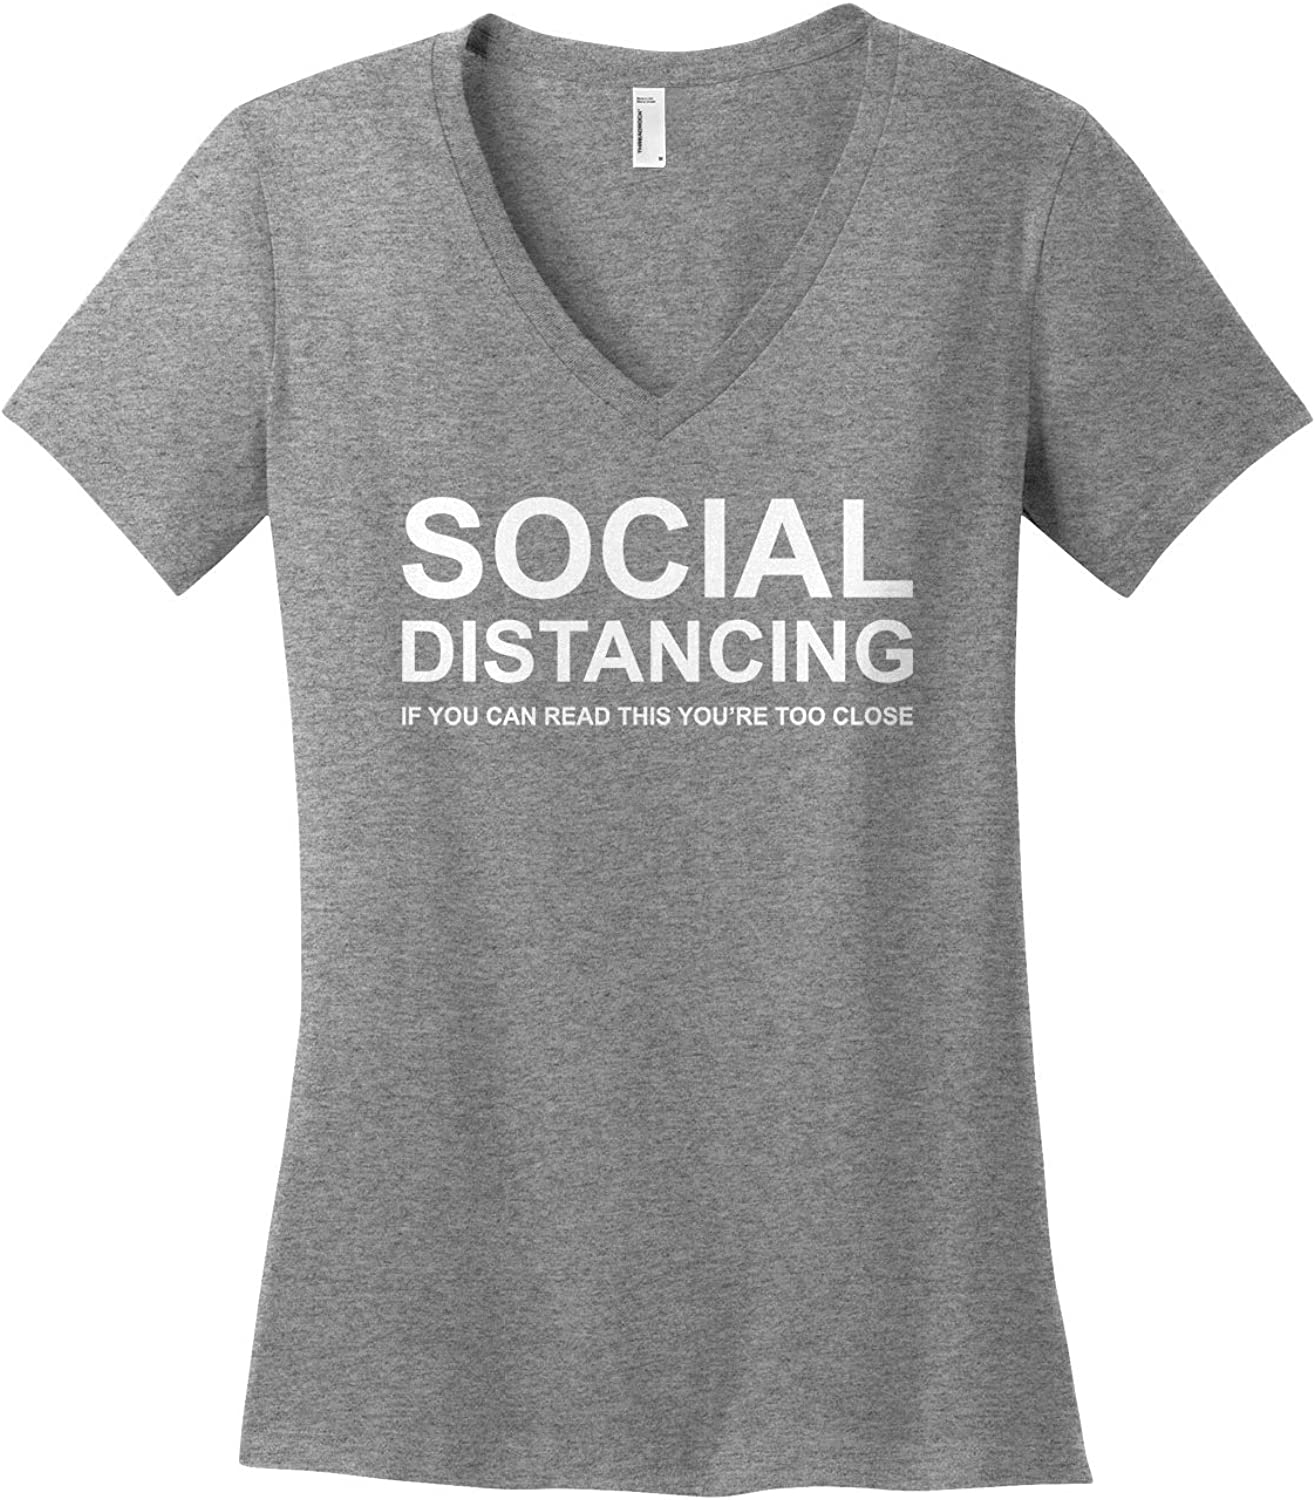 Women's Social Distancing If You Can Read This V-Neck T-Shirt